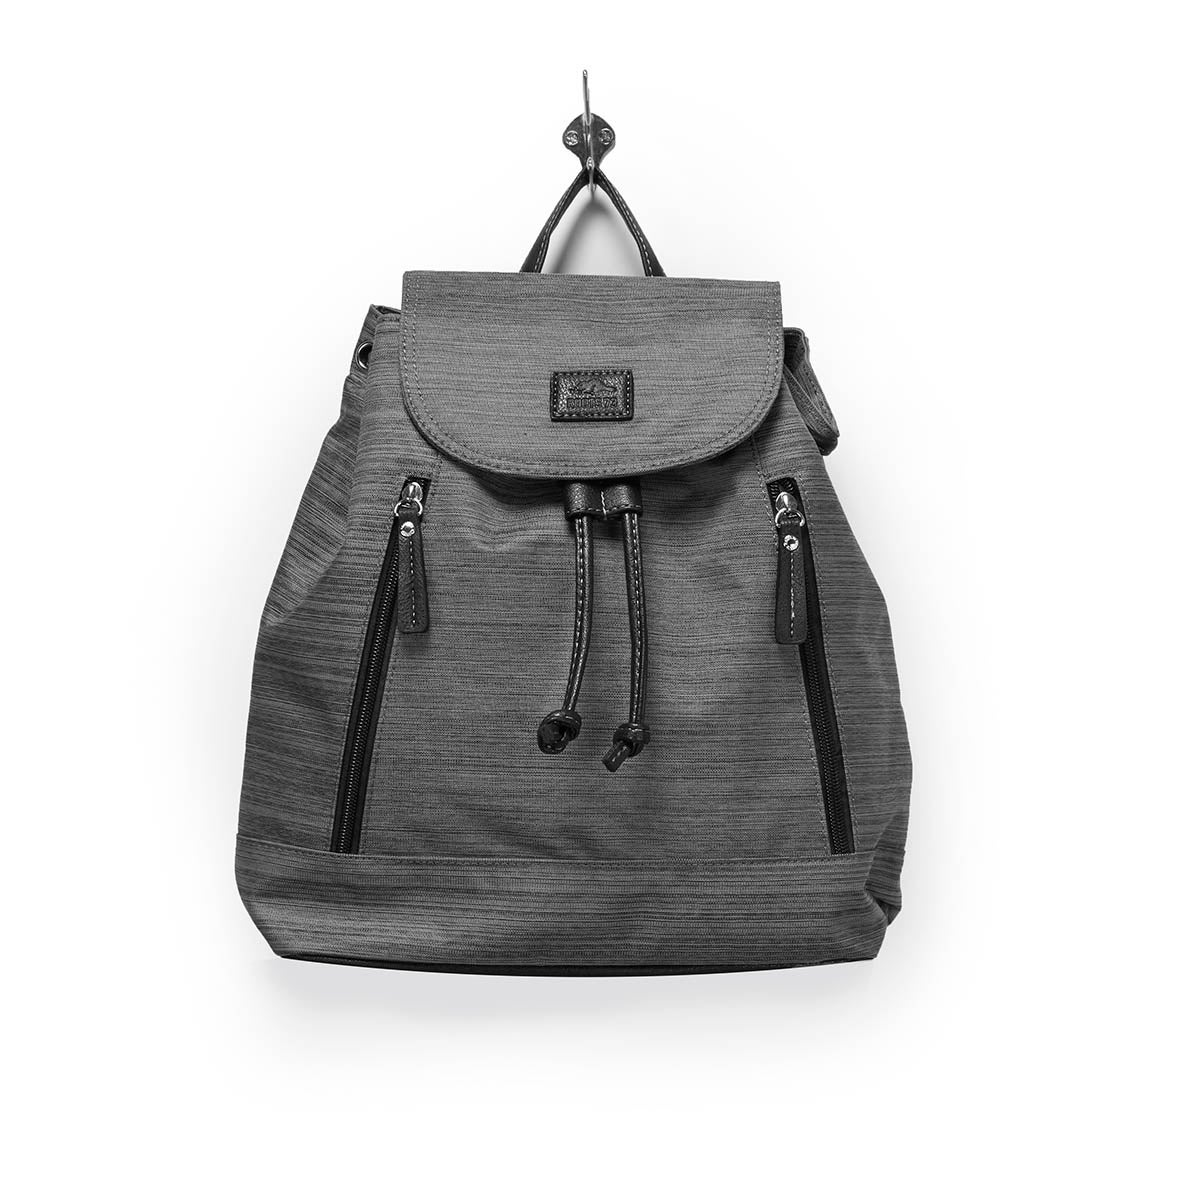 Lds gry textured mini backpack